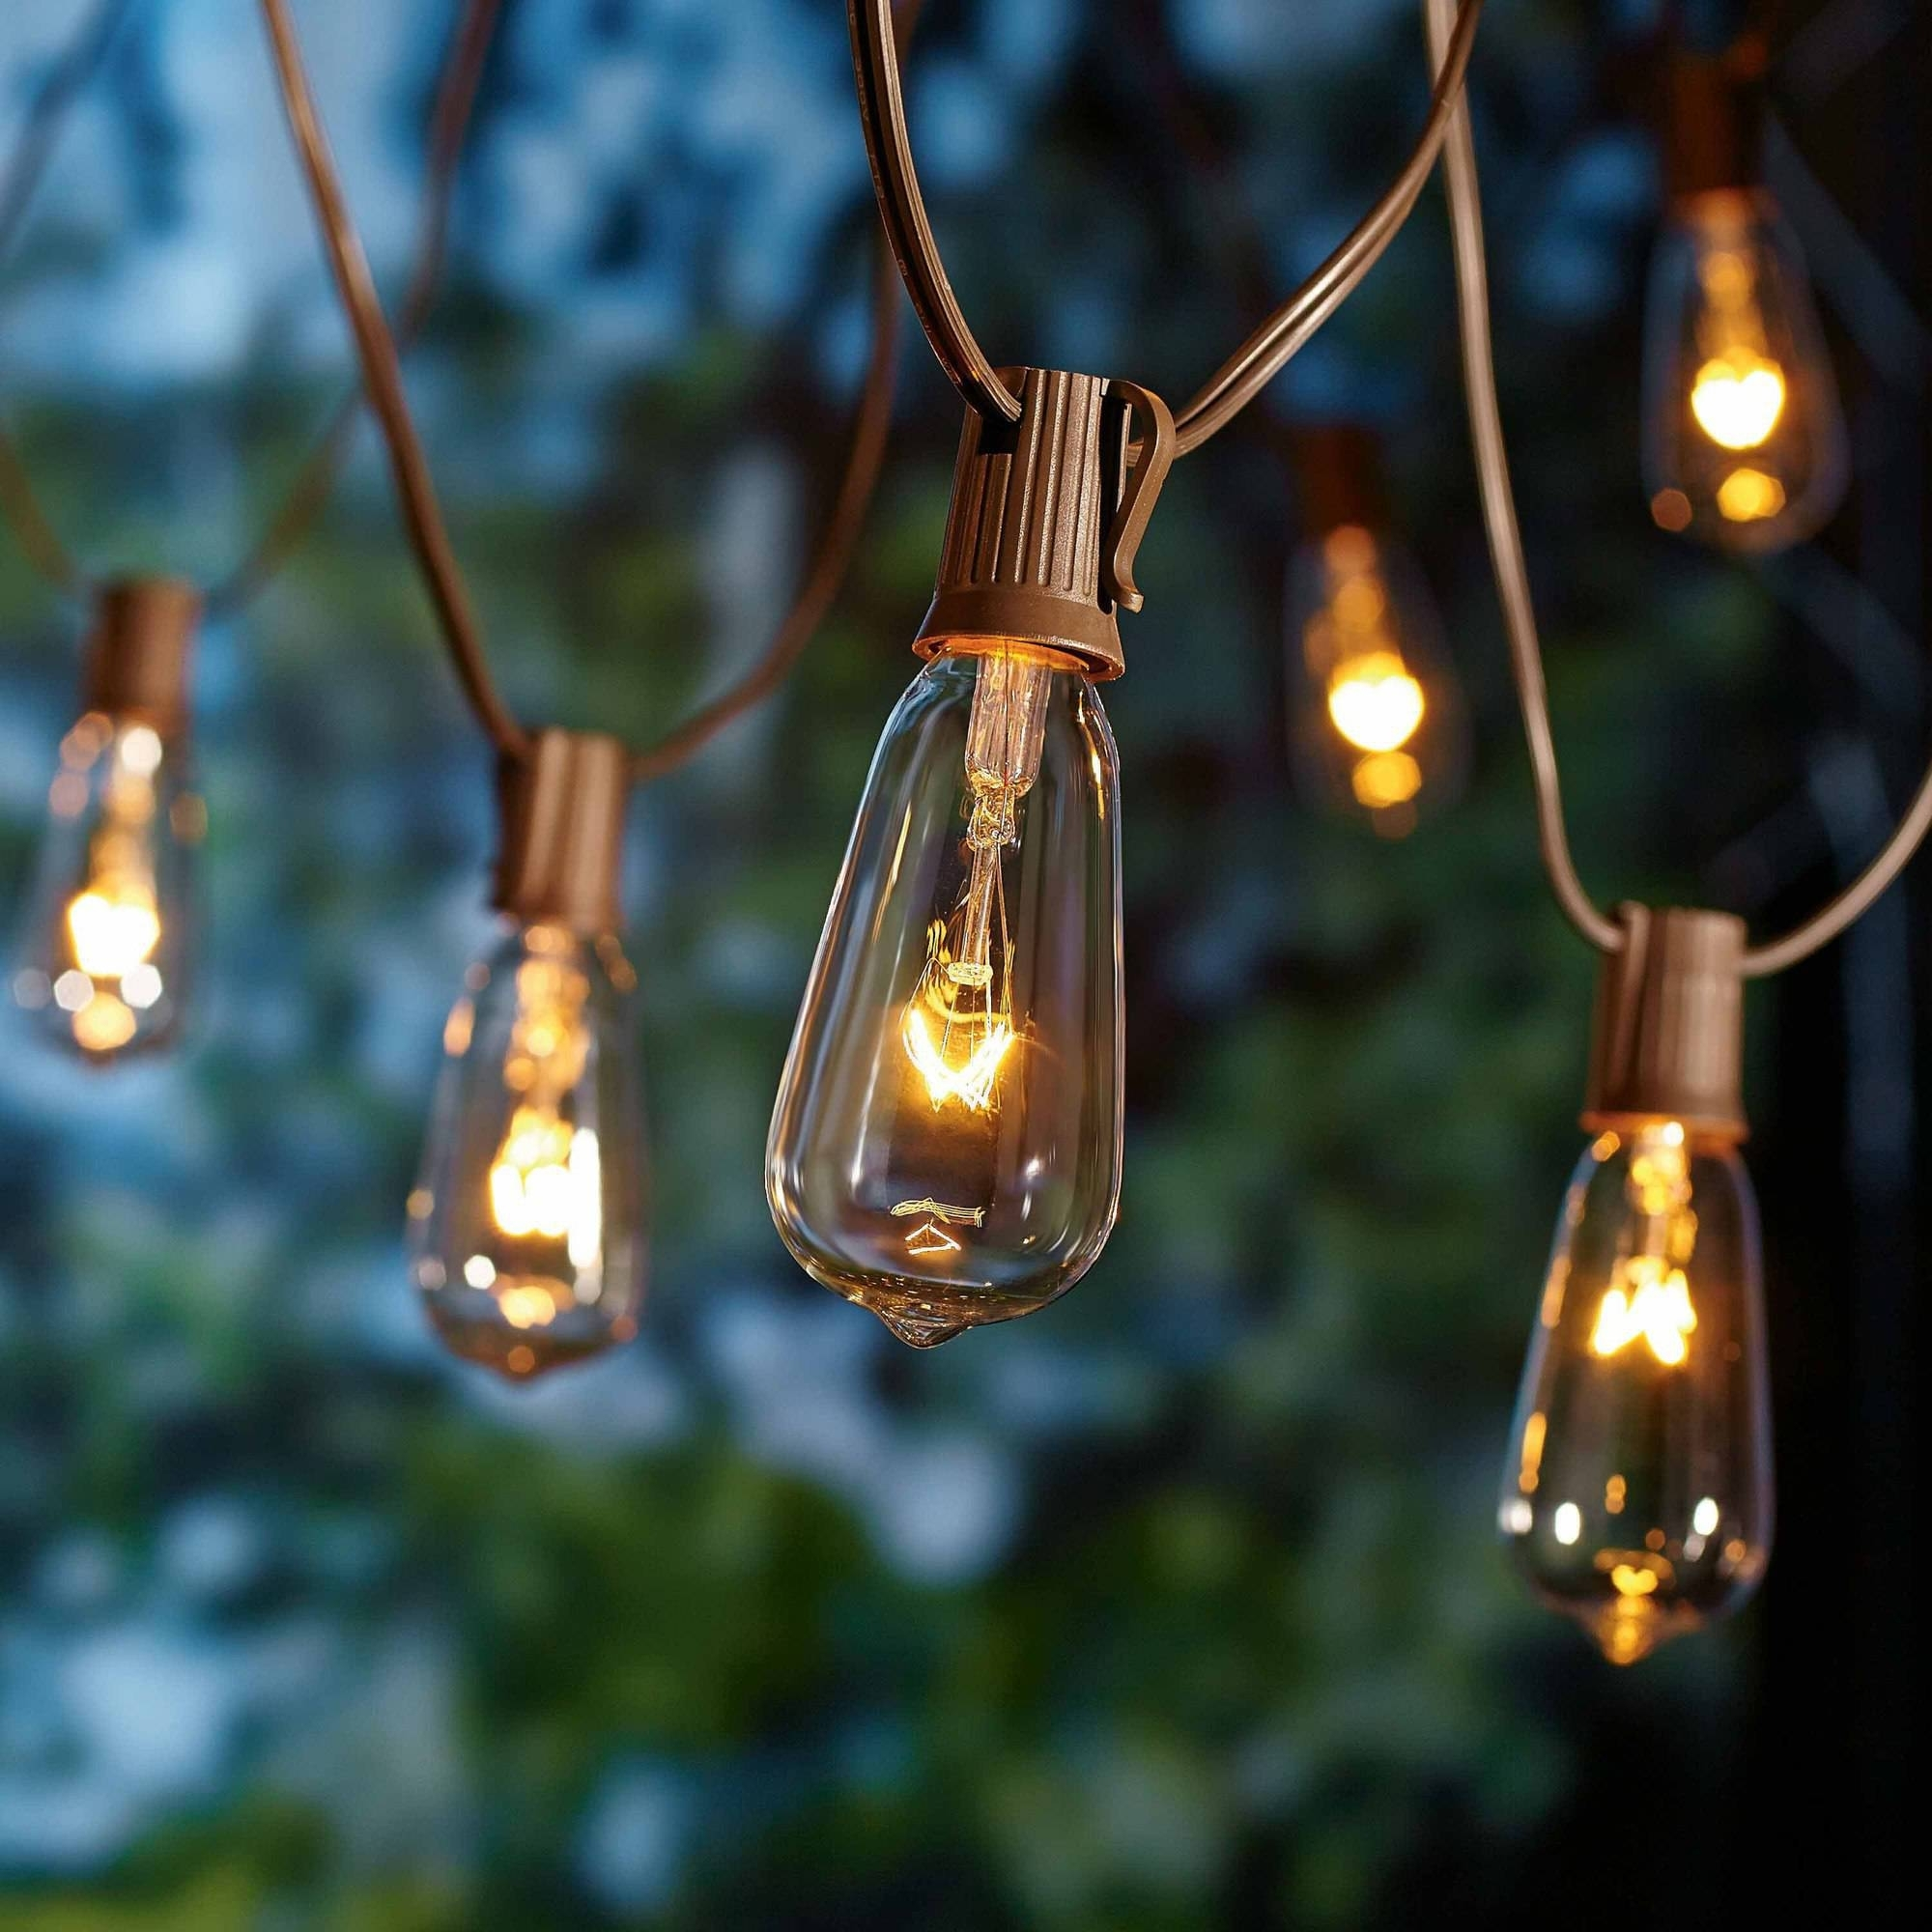 Better Homes And Gardens Outdoor Glass Edison String Lights, 10 inside Outdoor Battery Lanterns for Patio (Image 6 of 20)